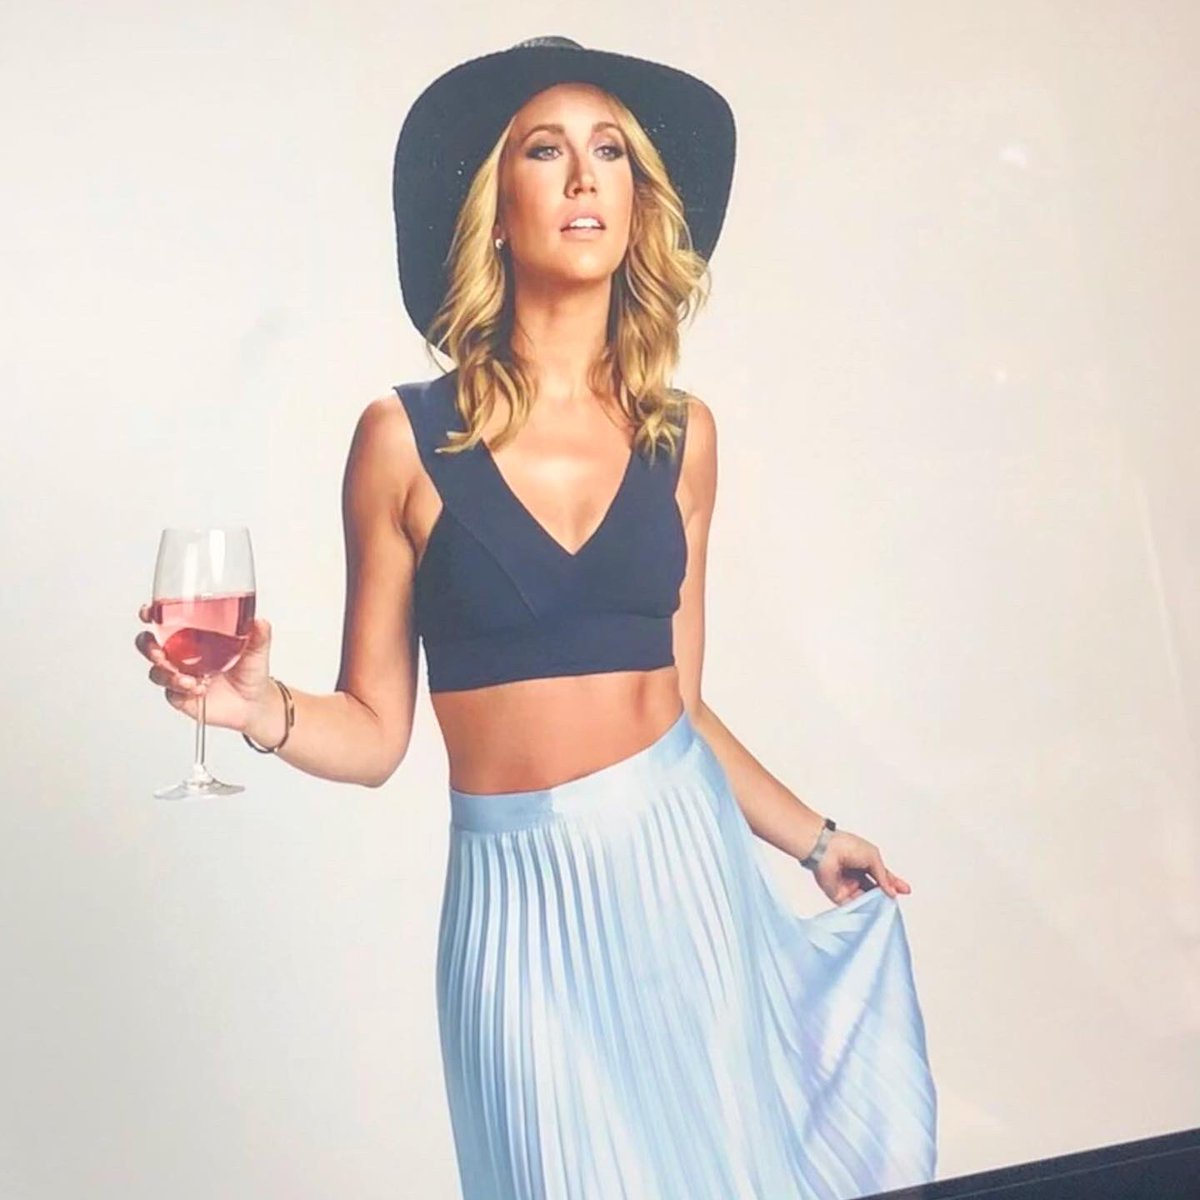 Anna Camp On Twitter Meet Brooke Tomorrow In Desperados On Netflix She Loves Rose Tequila Vodka And Merlot She Also Loves Her Best Friends So Much She Follows Them To Mexico